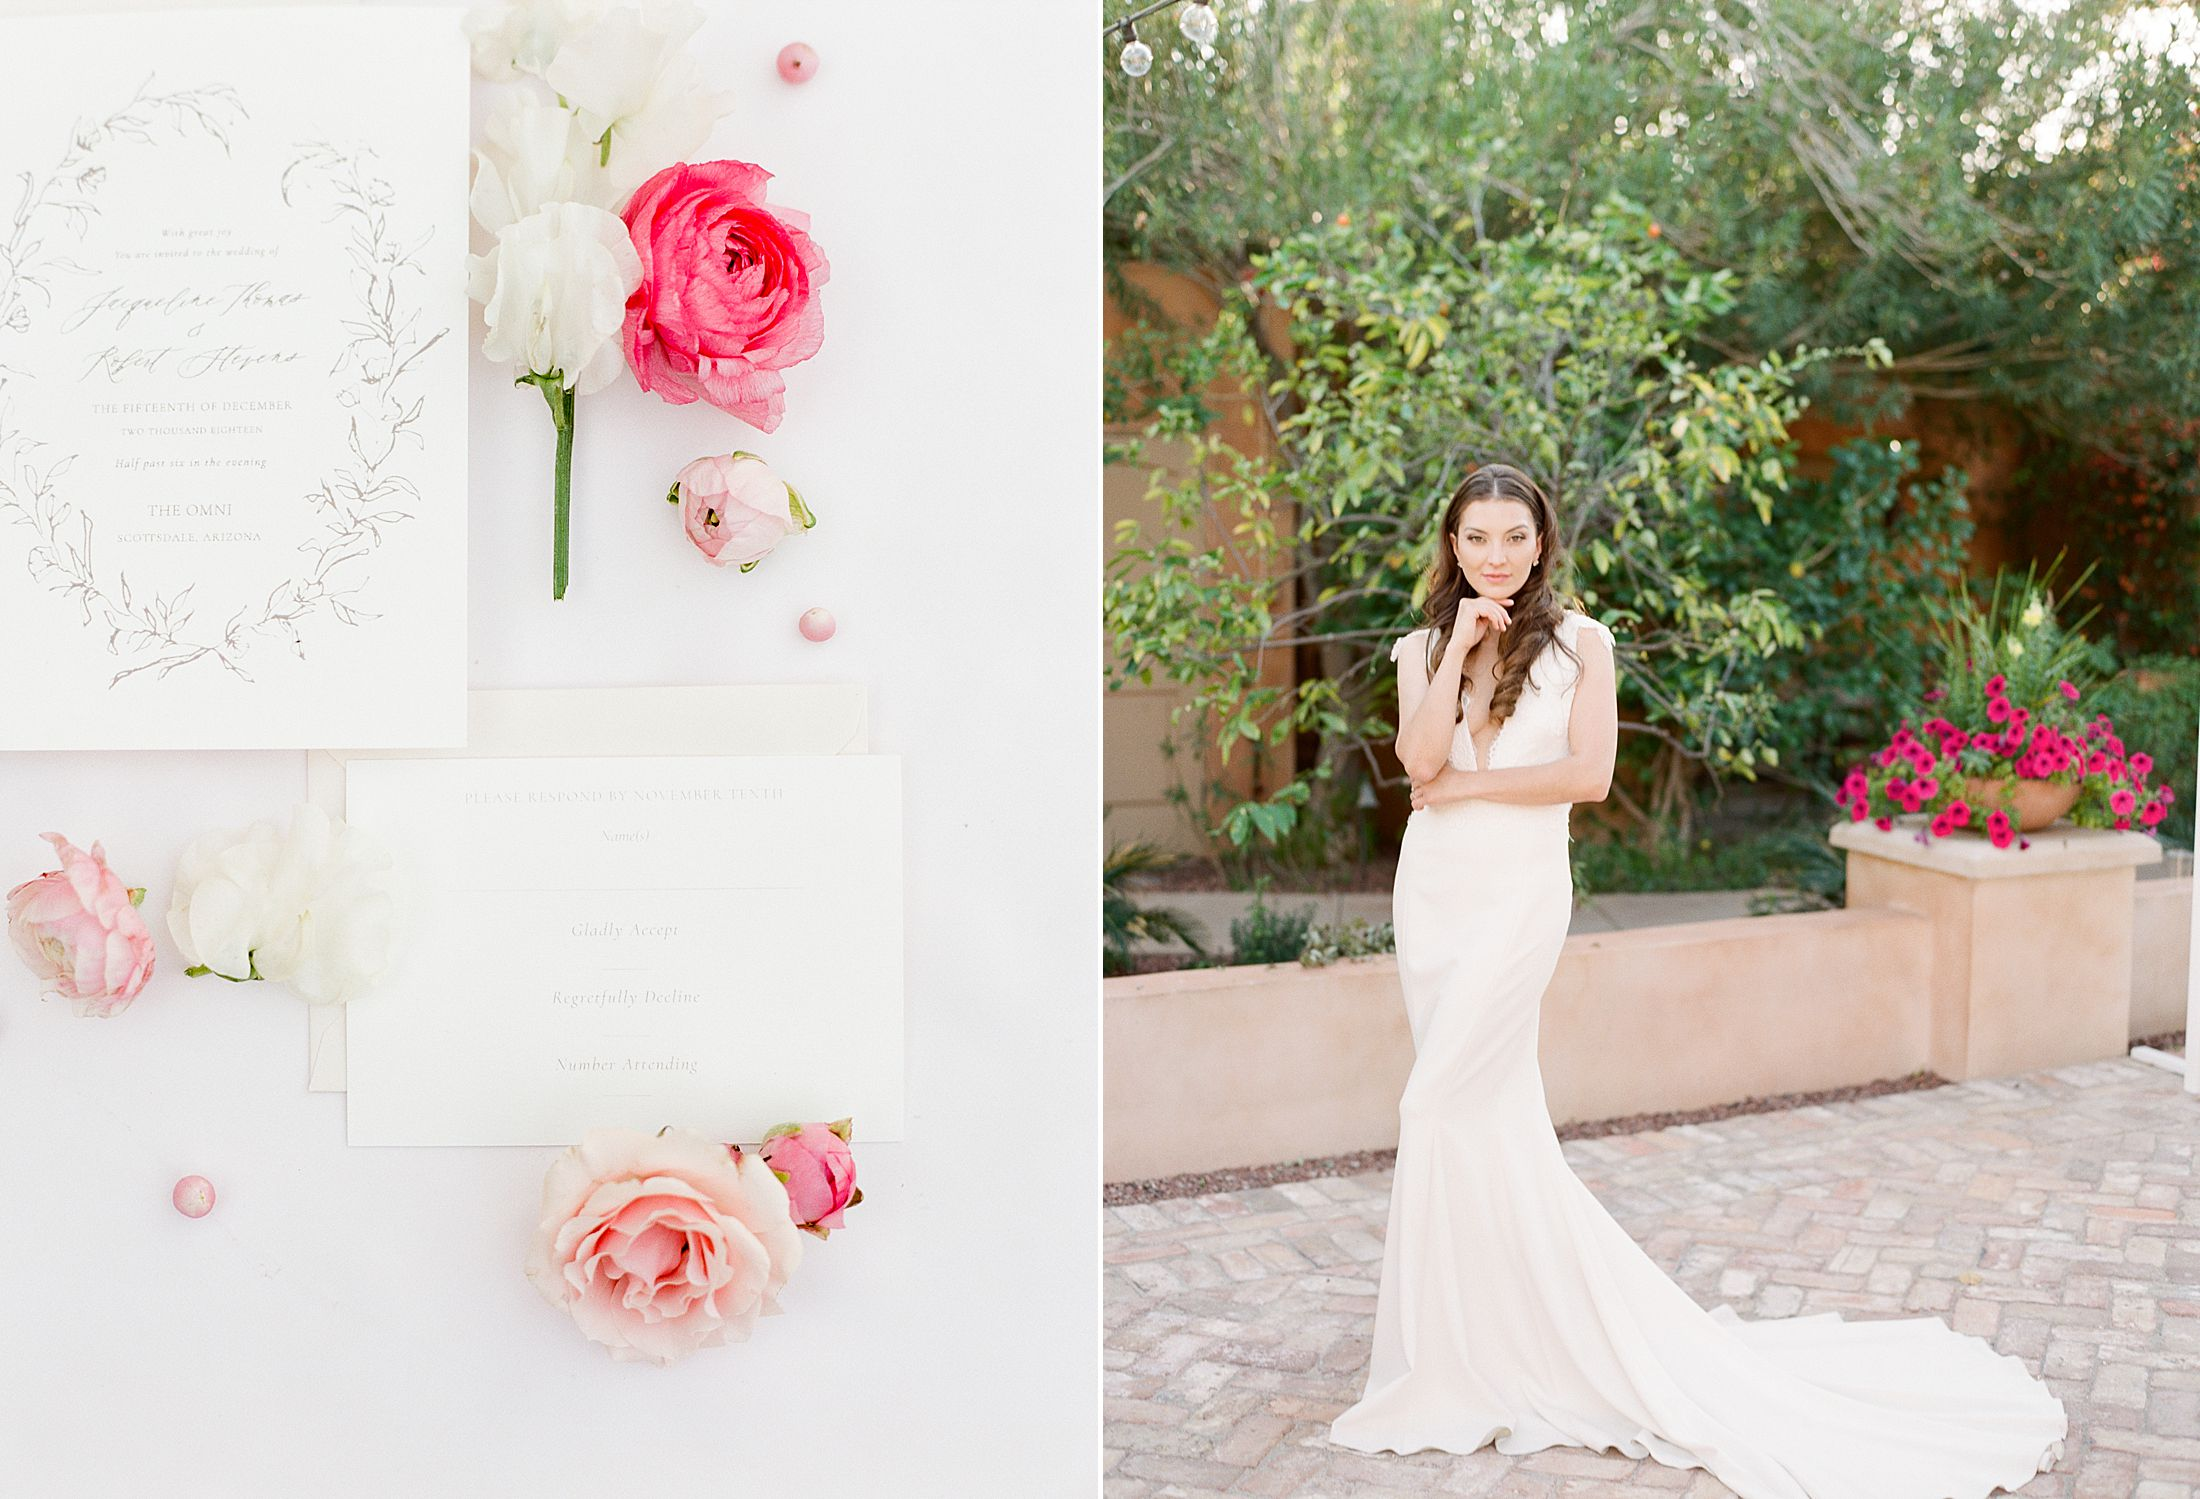 Pink Ombre Wedding Inspiration on Style Me Pretty - Royal Palms Wedding - Scottsdale Wedding - Ashley Baumgartner - Bloom and Blueprint - Wedding Puppies - Bulldog Puppies_0030.jpg